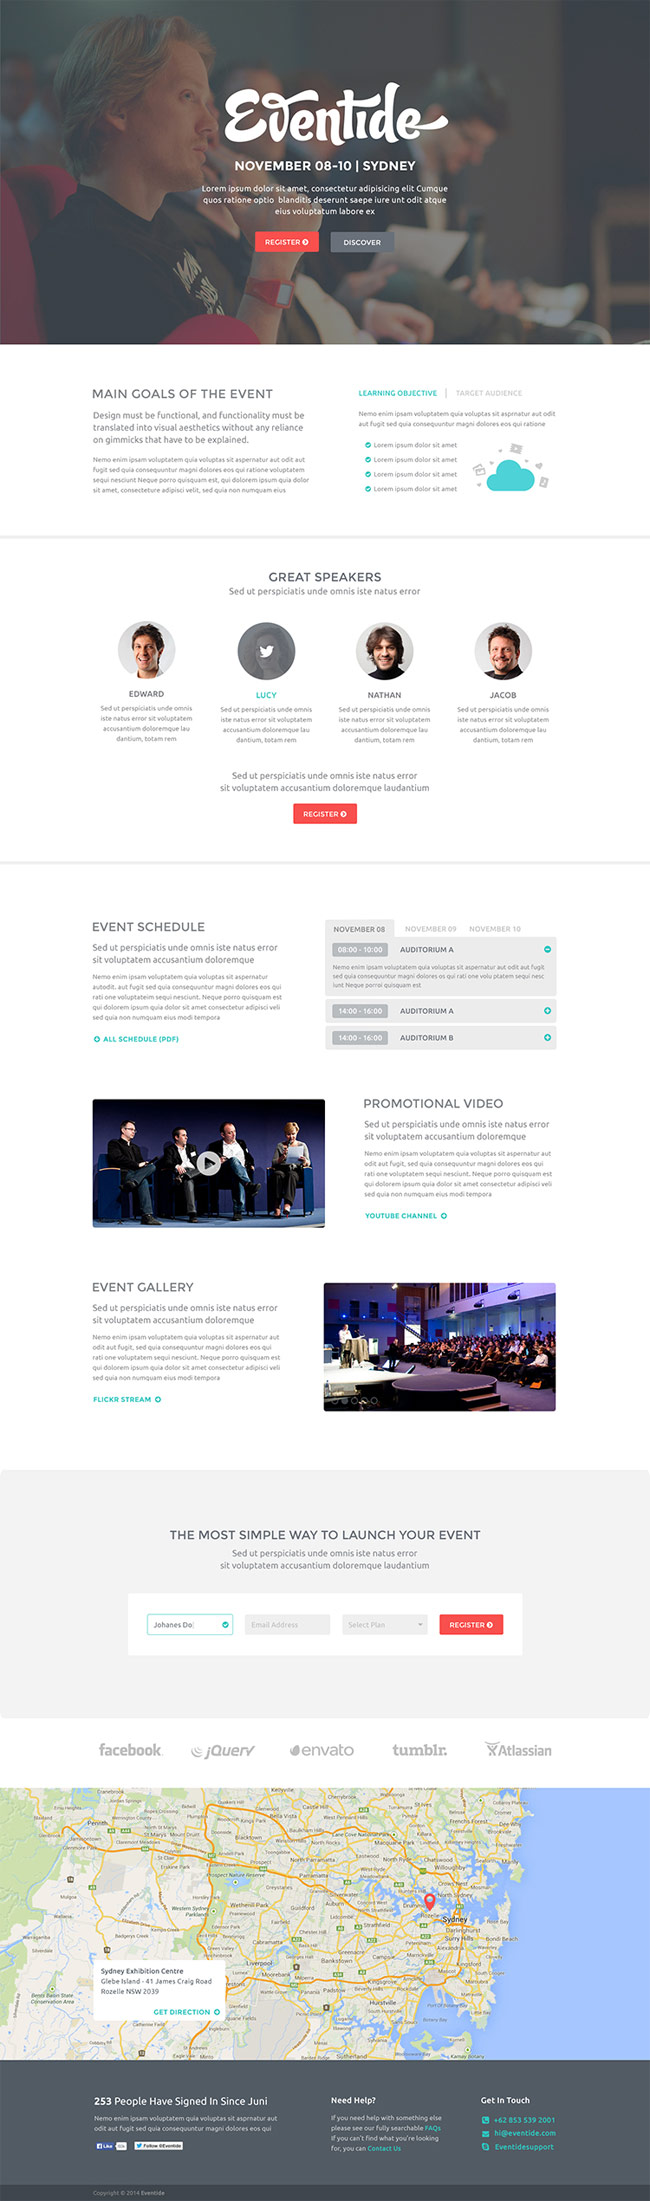 Eventide - Free Landing Page PSD Template Preview